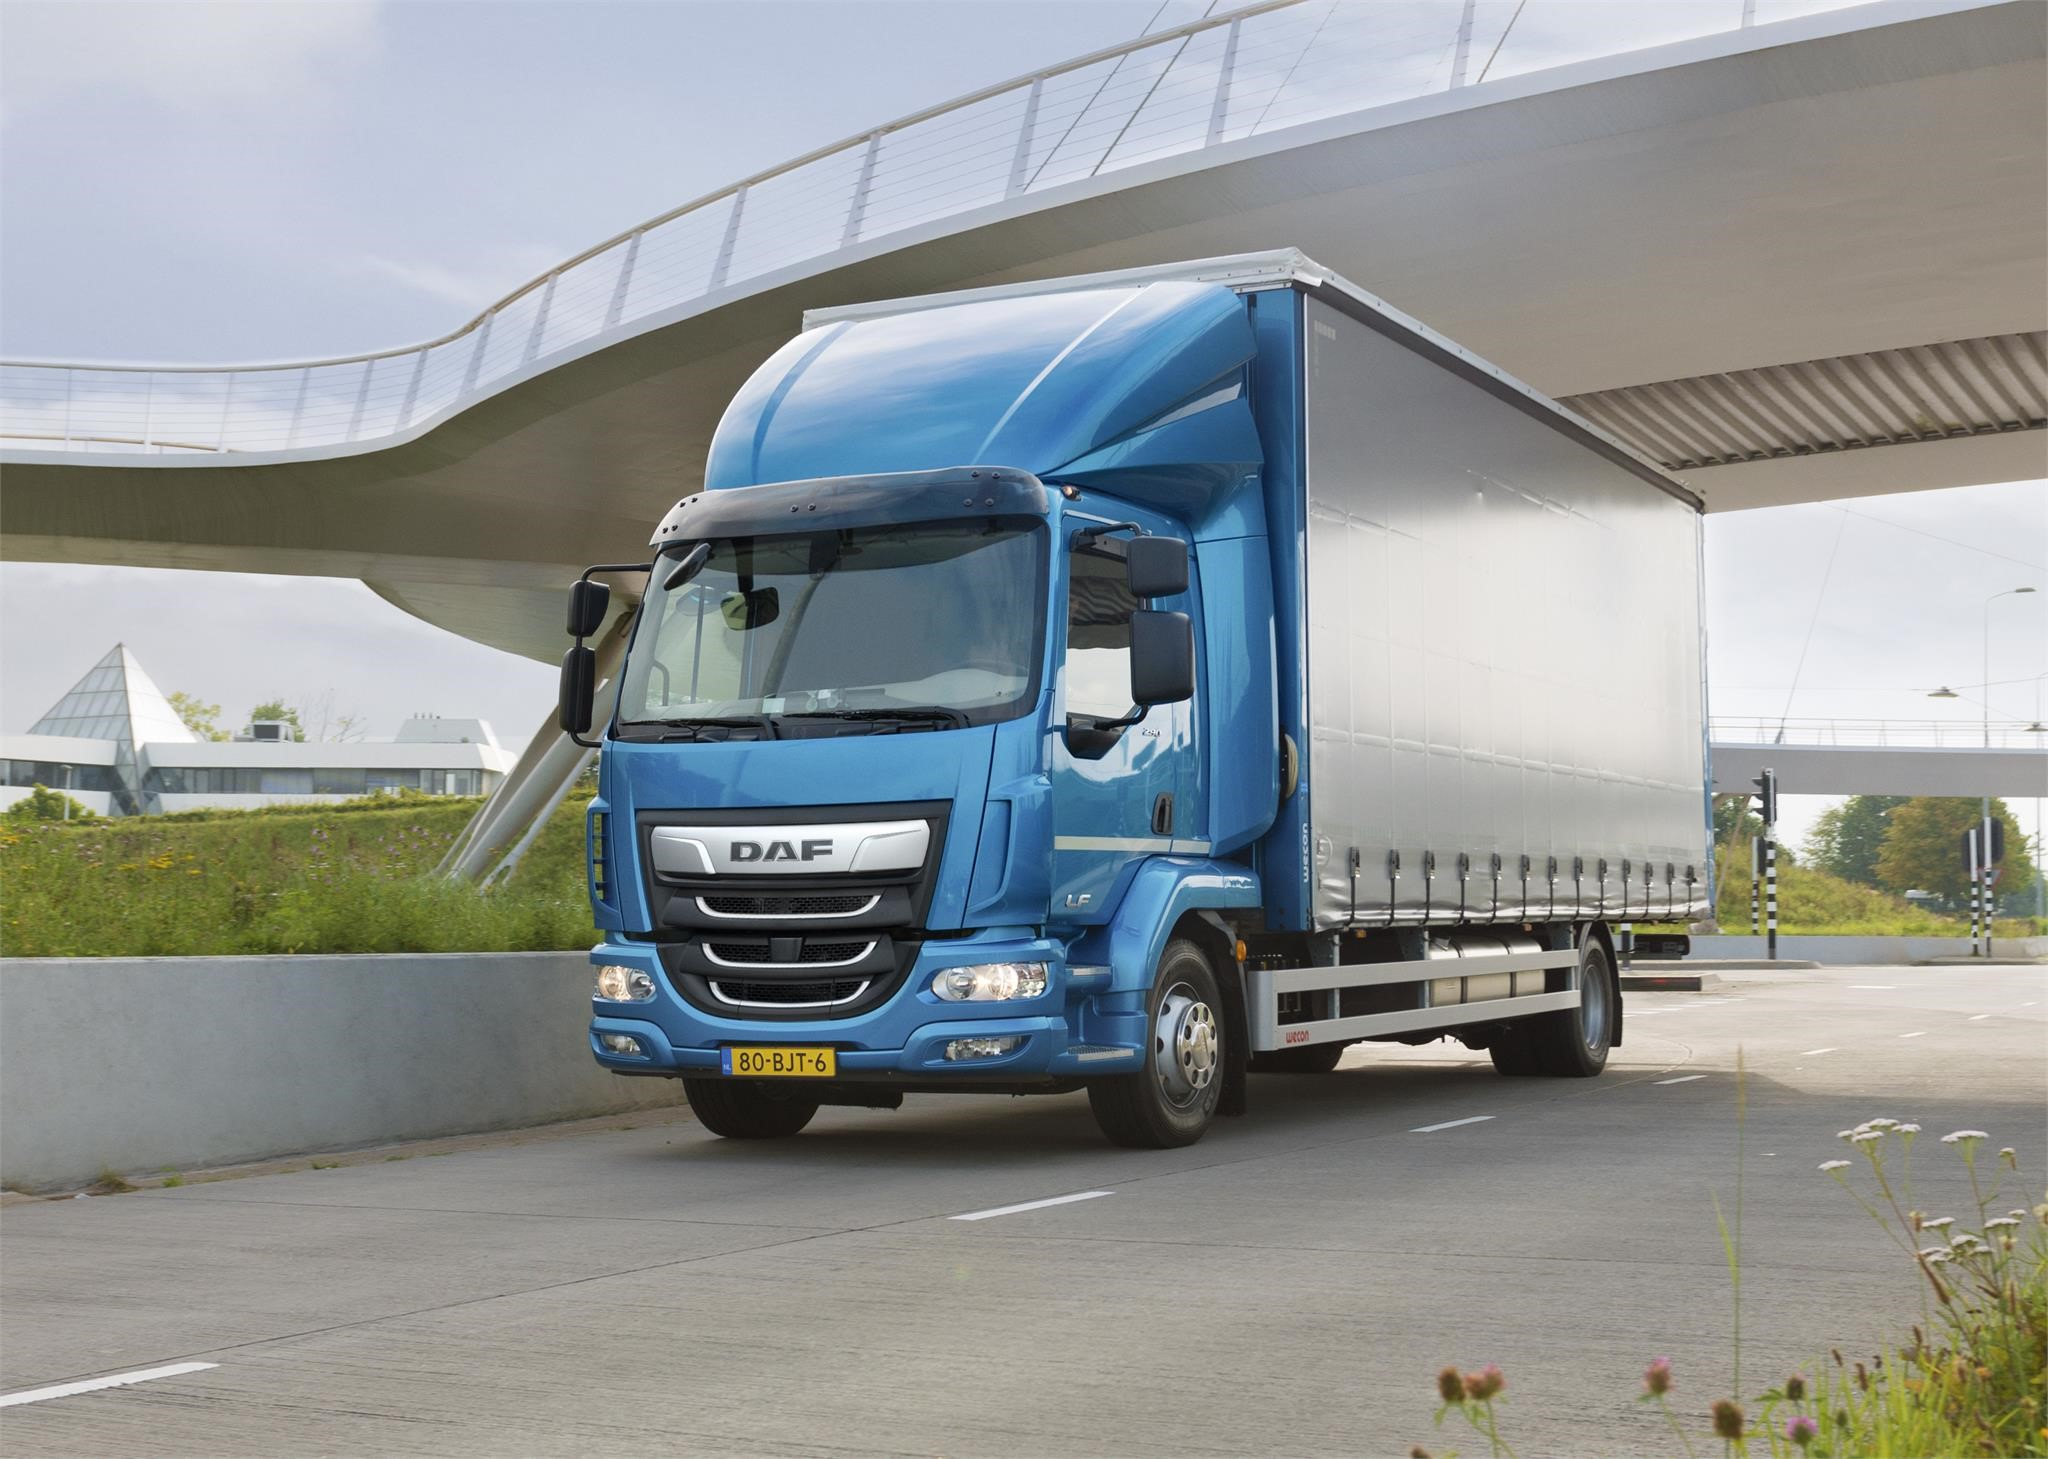 The new DAF LF truck